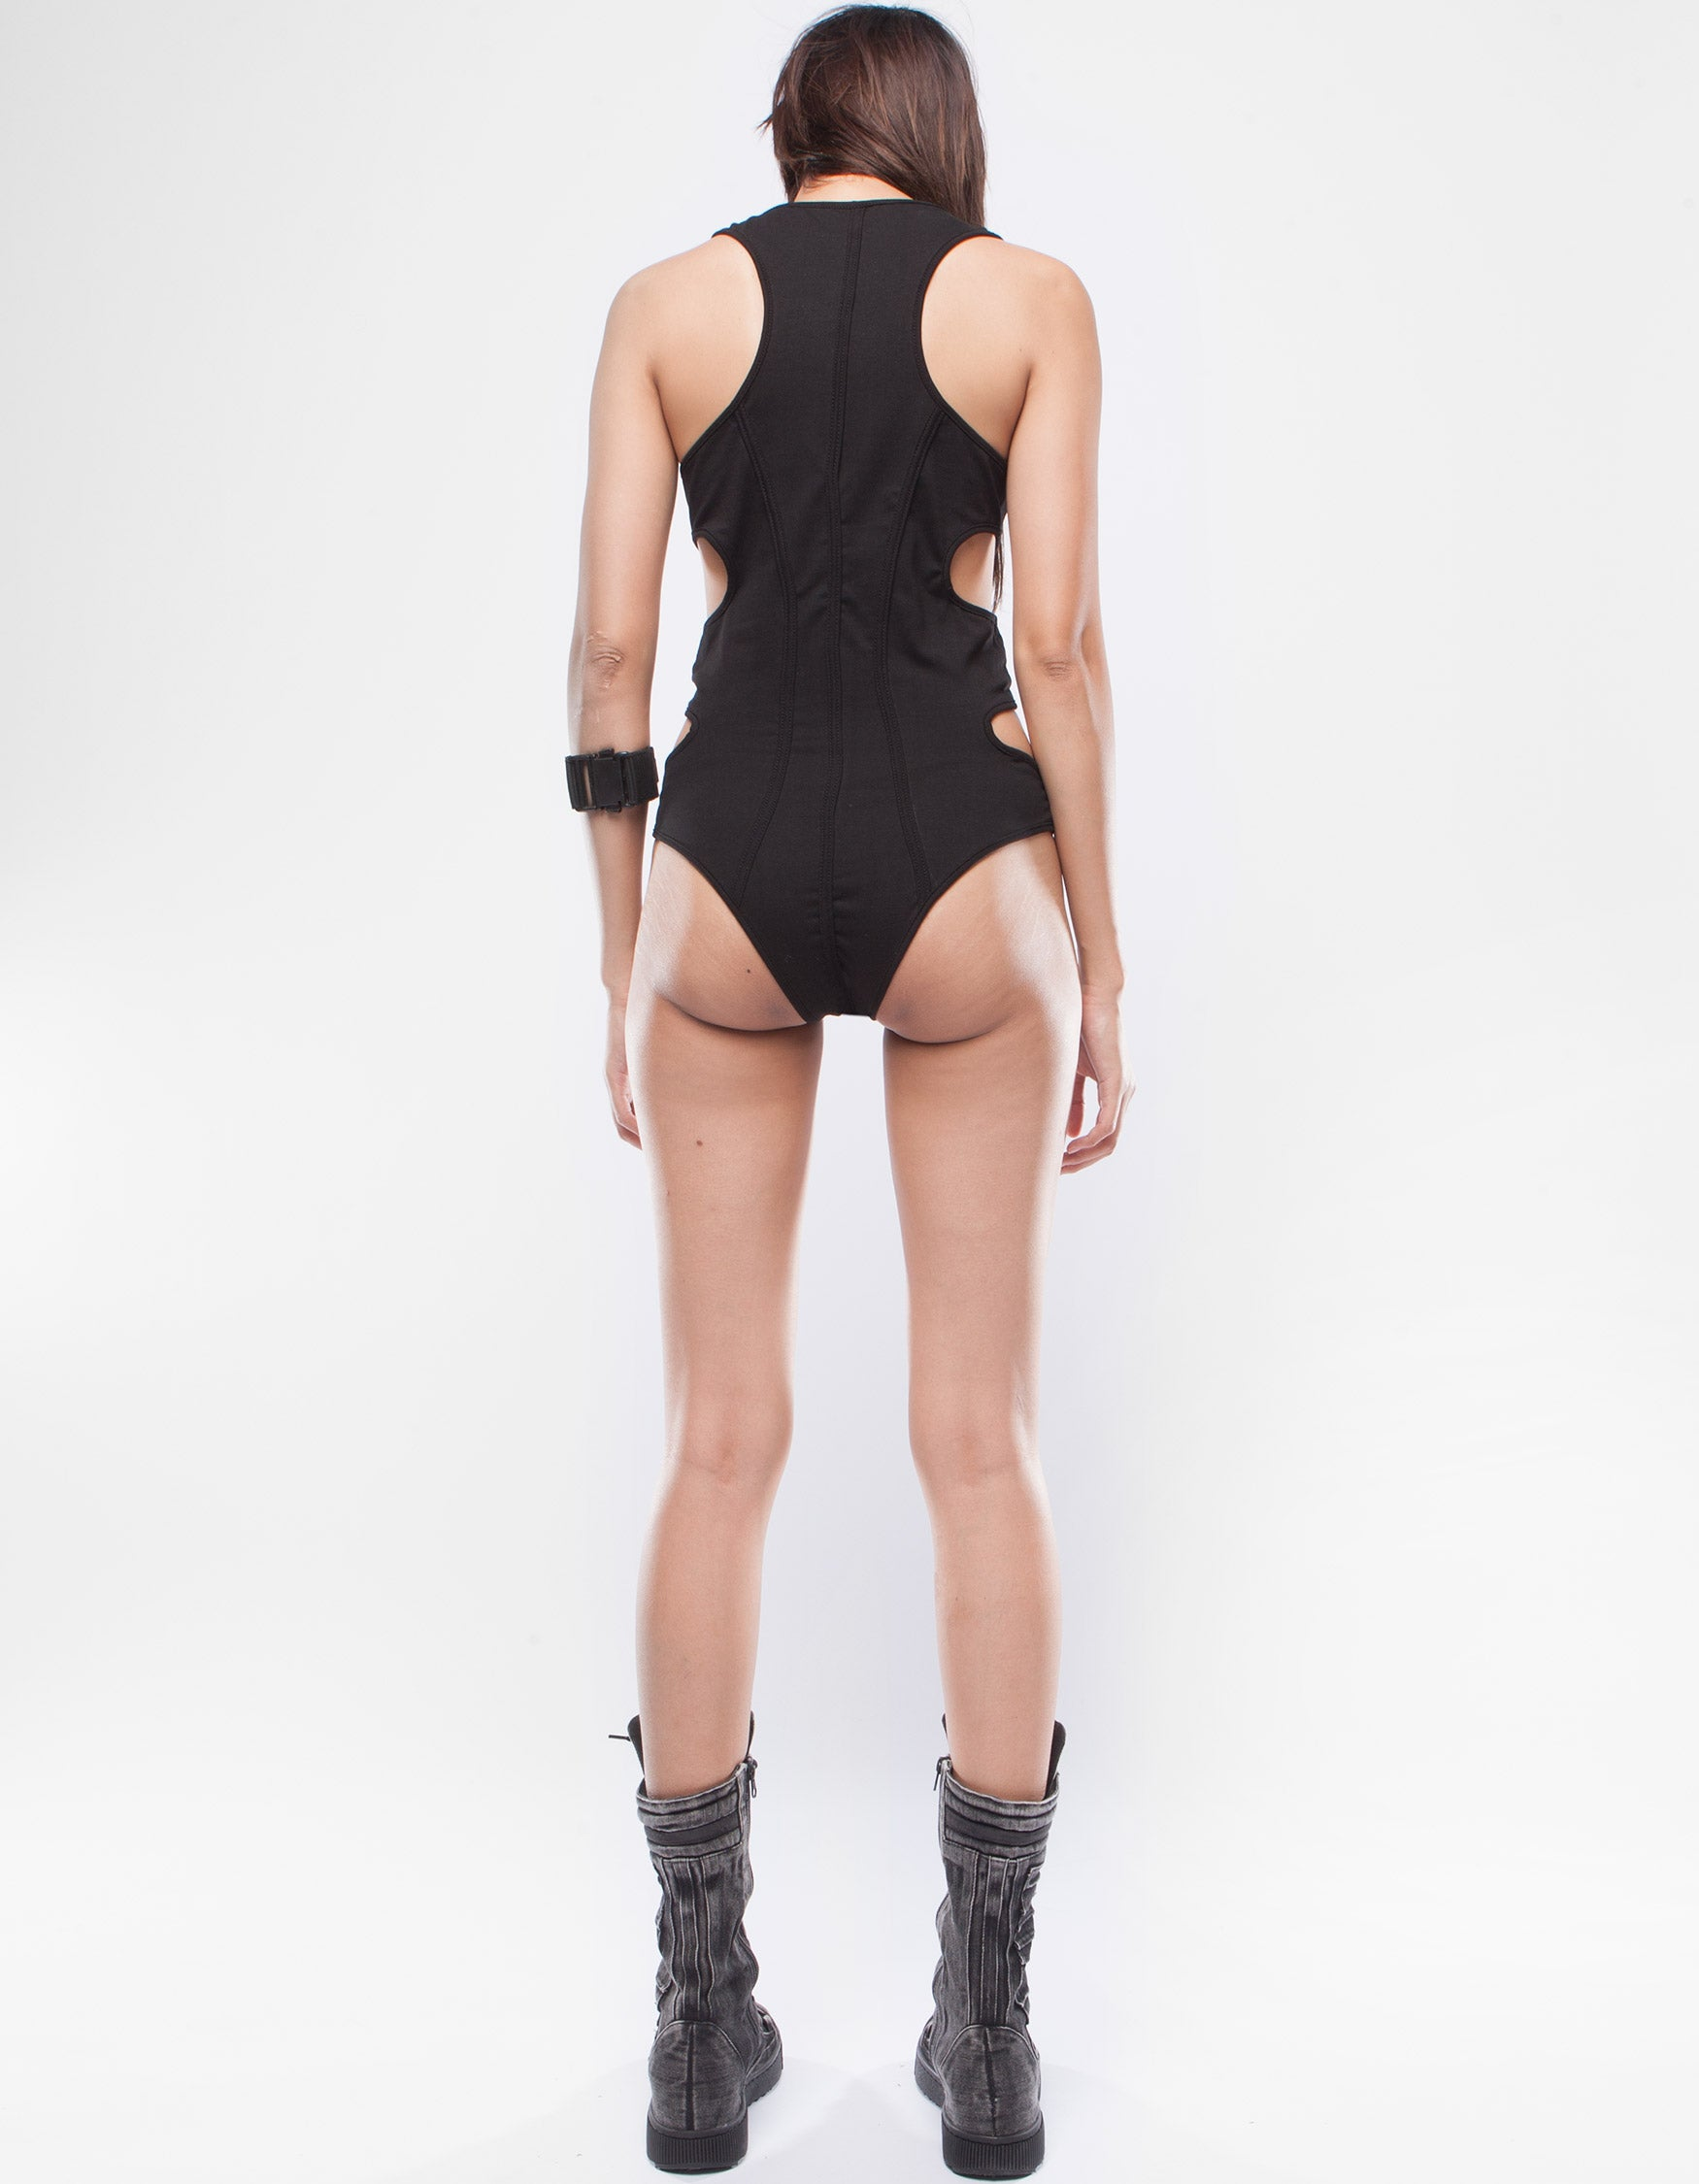 BODY SUIT BLACK FLAME